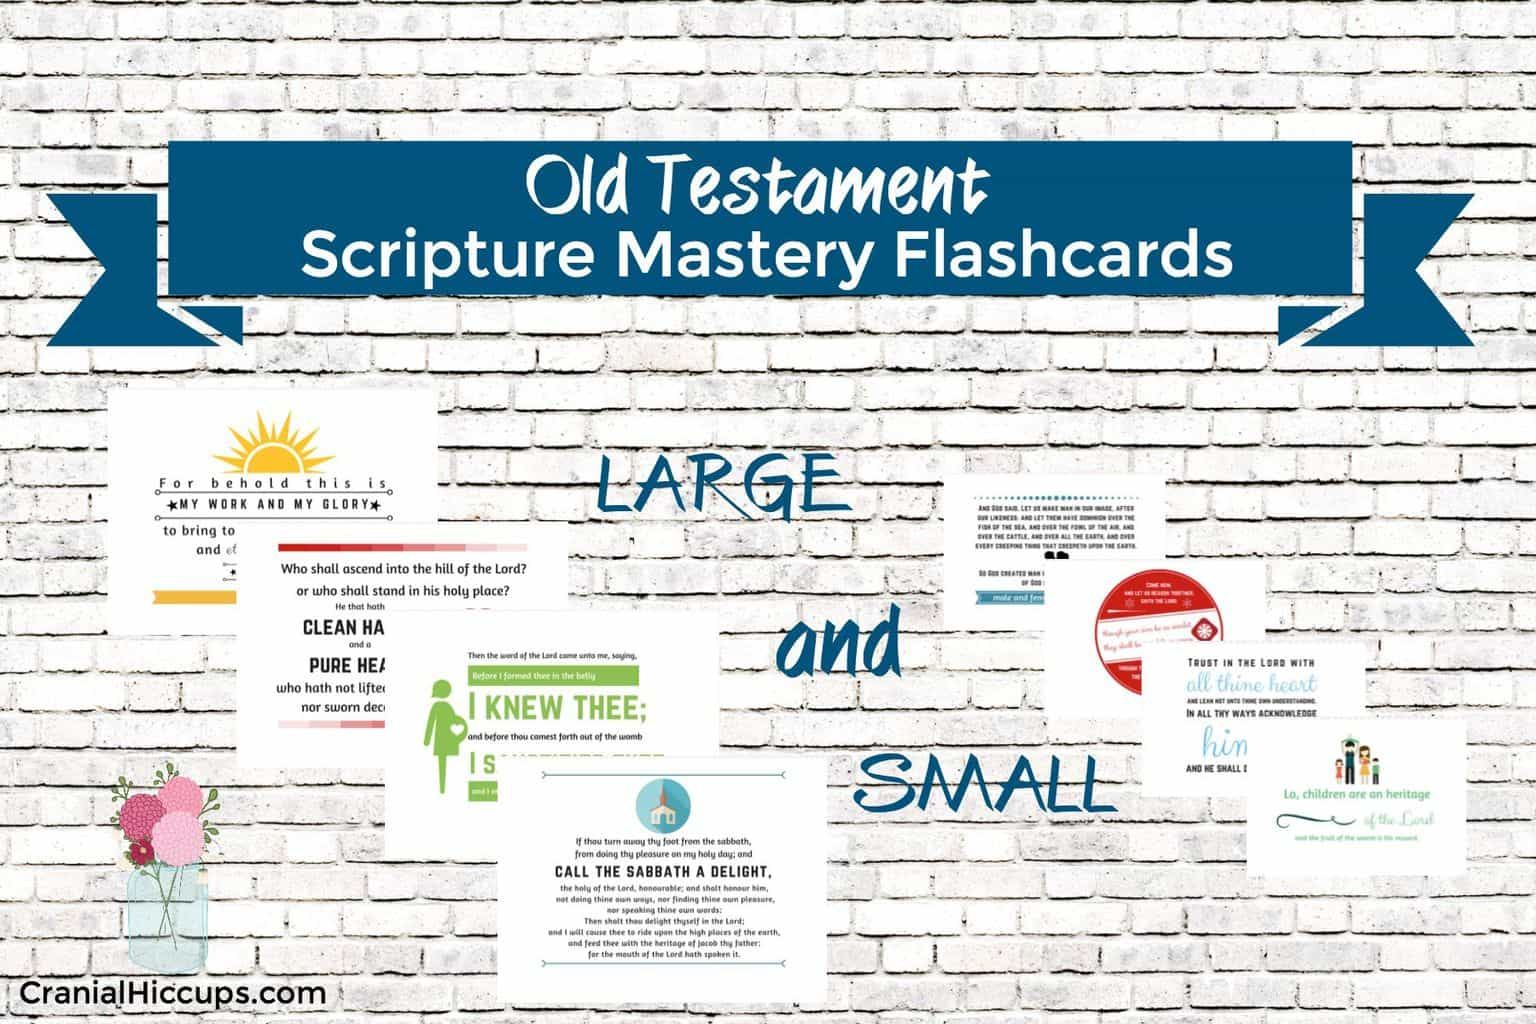 Old Testament Scripture Mastery Flashcards Cranial Hiccups